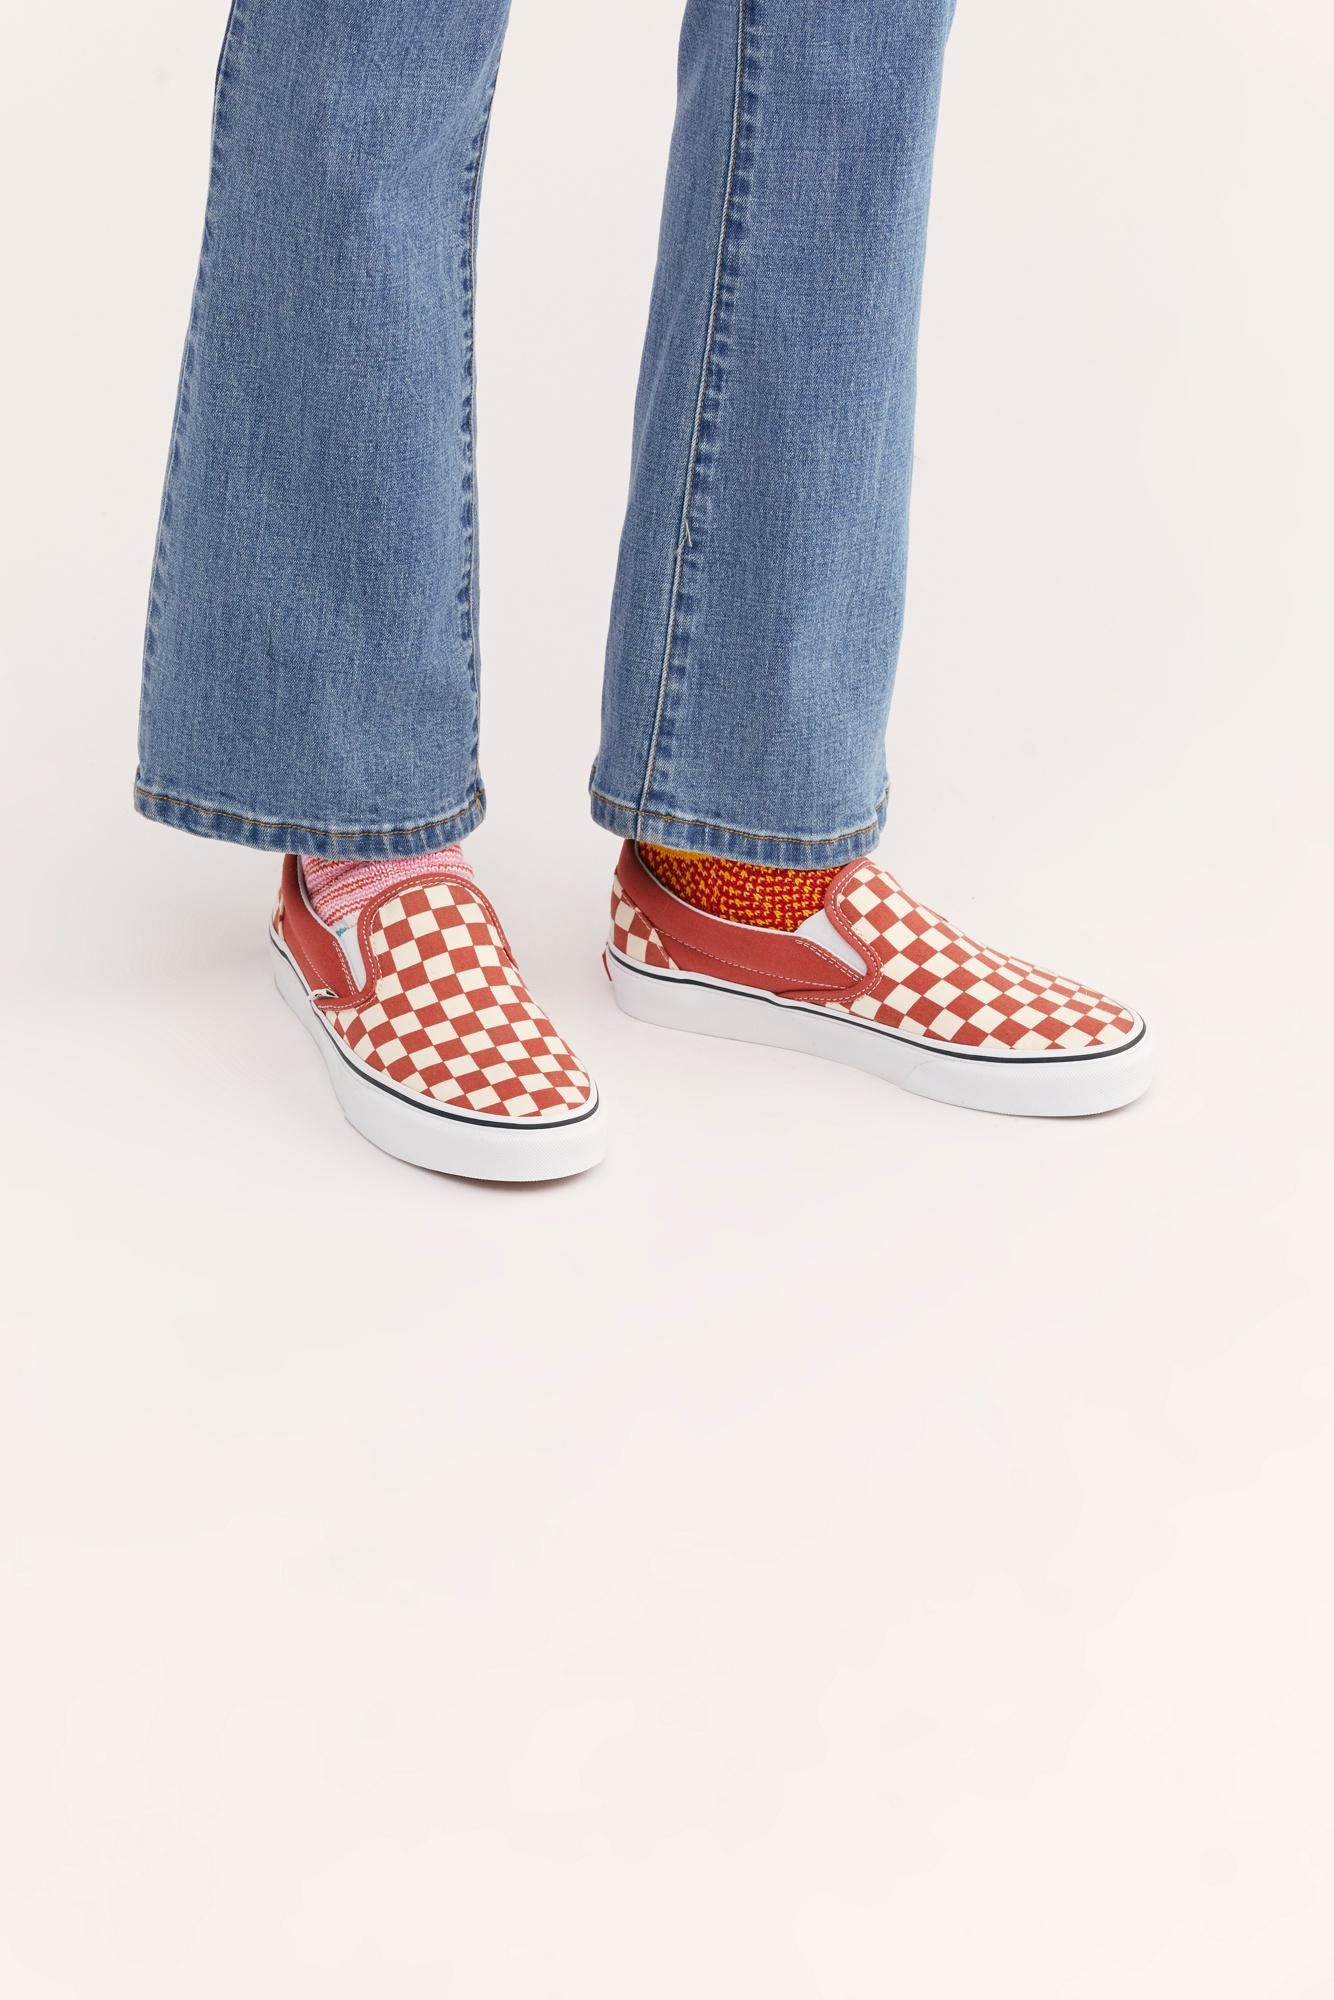 4d4e12c27514d5 Lyst - Free People Classic Checkered Slip-on By Vans